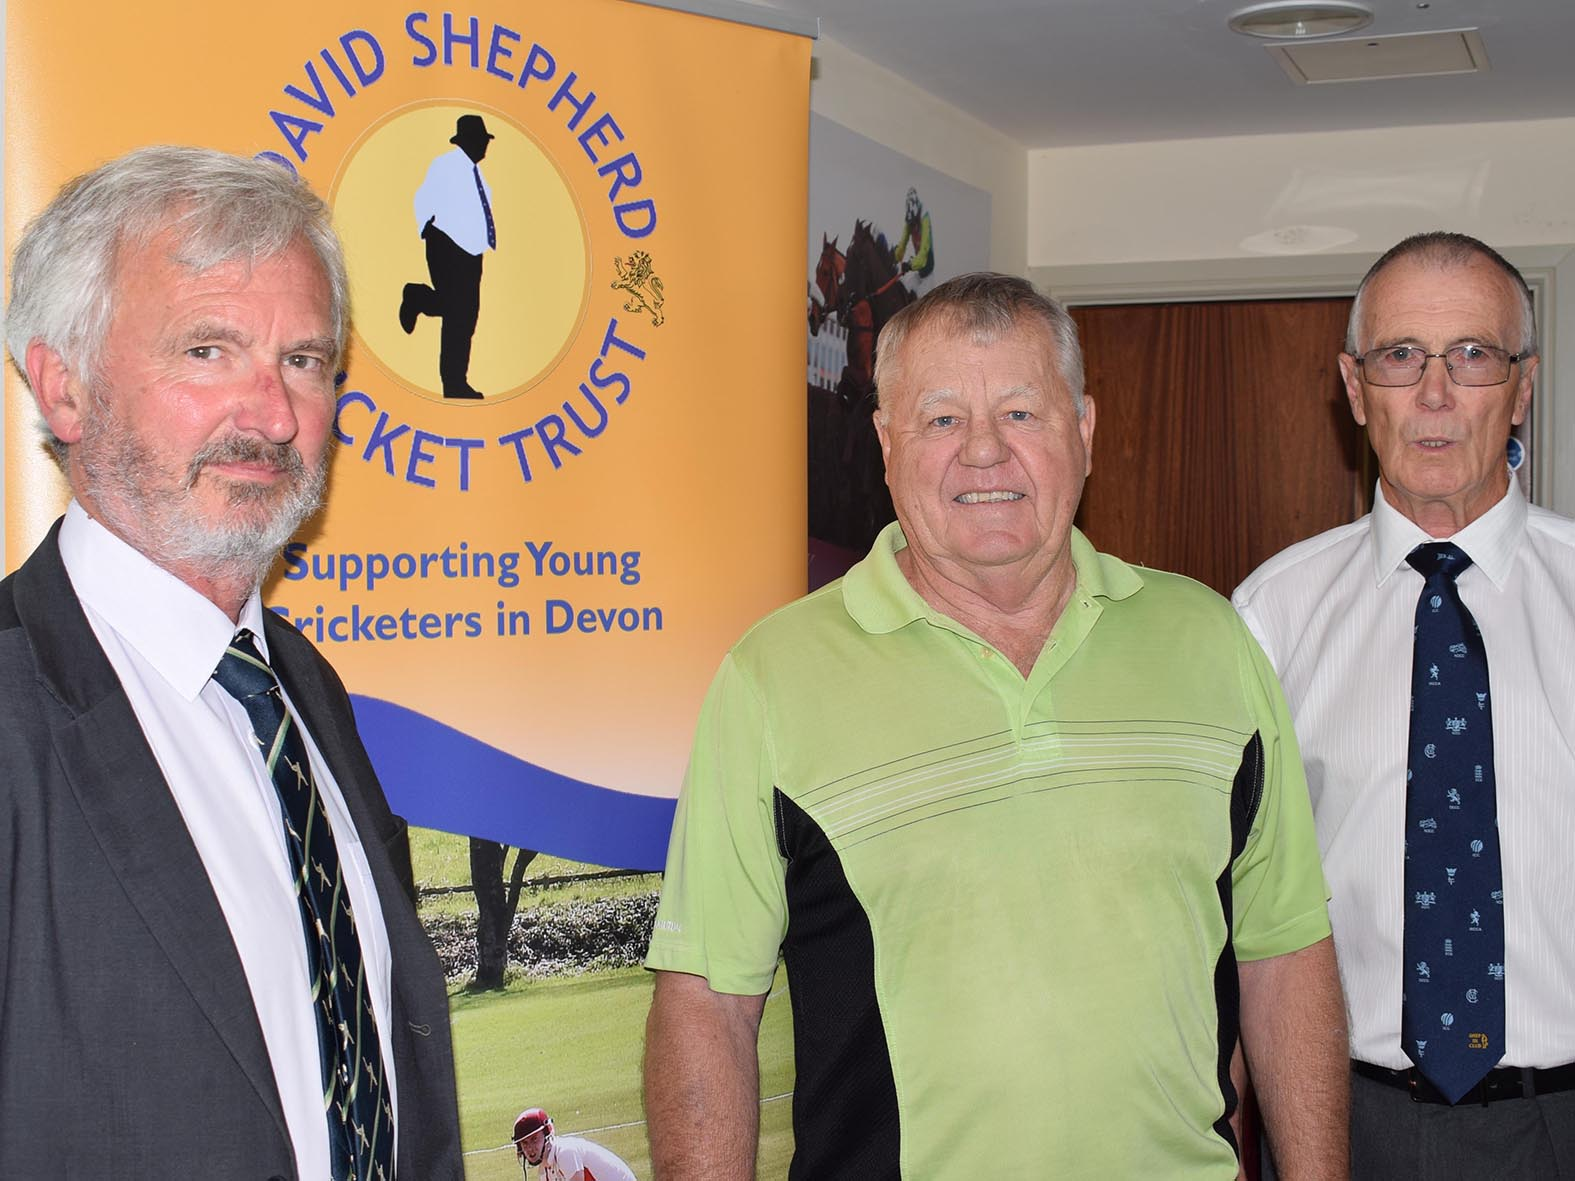 Jack Davey (left) with DSCT chairman Guy Curry (right) and guest speaker Mike Procter at a fund-raising lunch for the cricket charity<br>credit: Conrad Sutcliffe